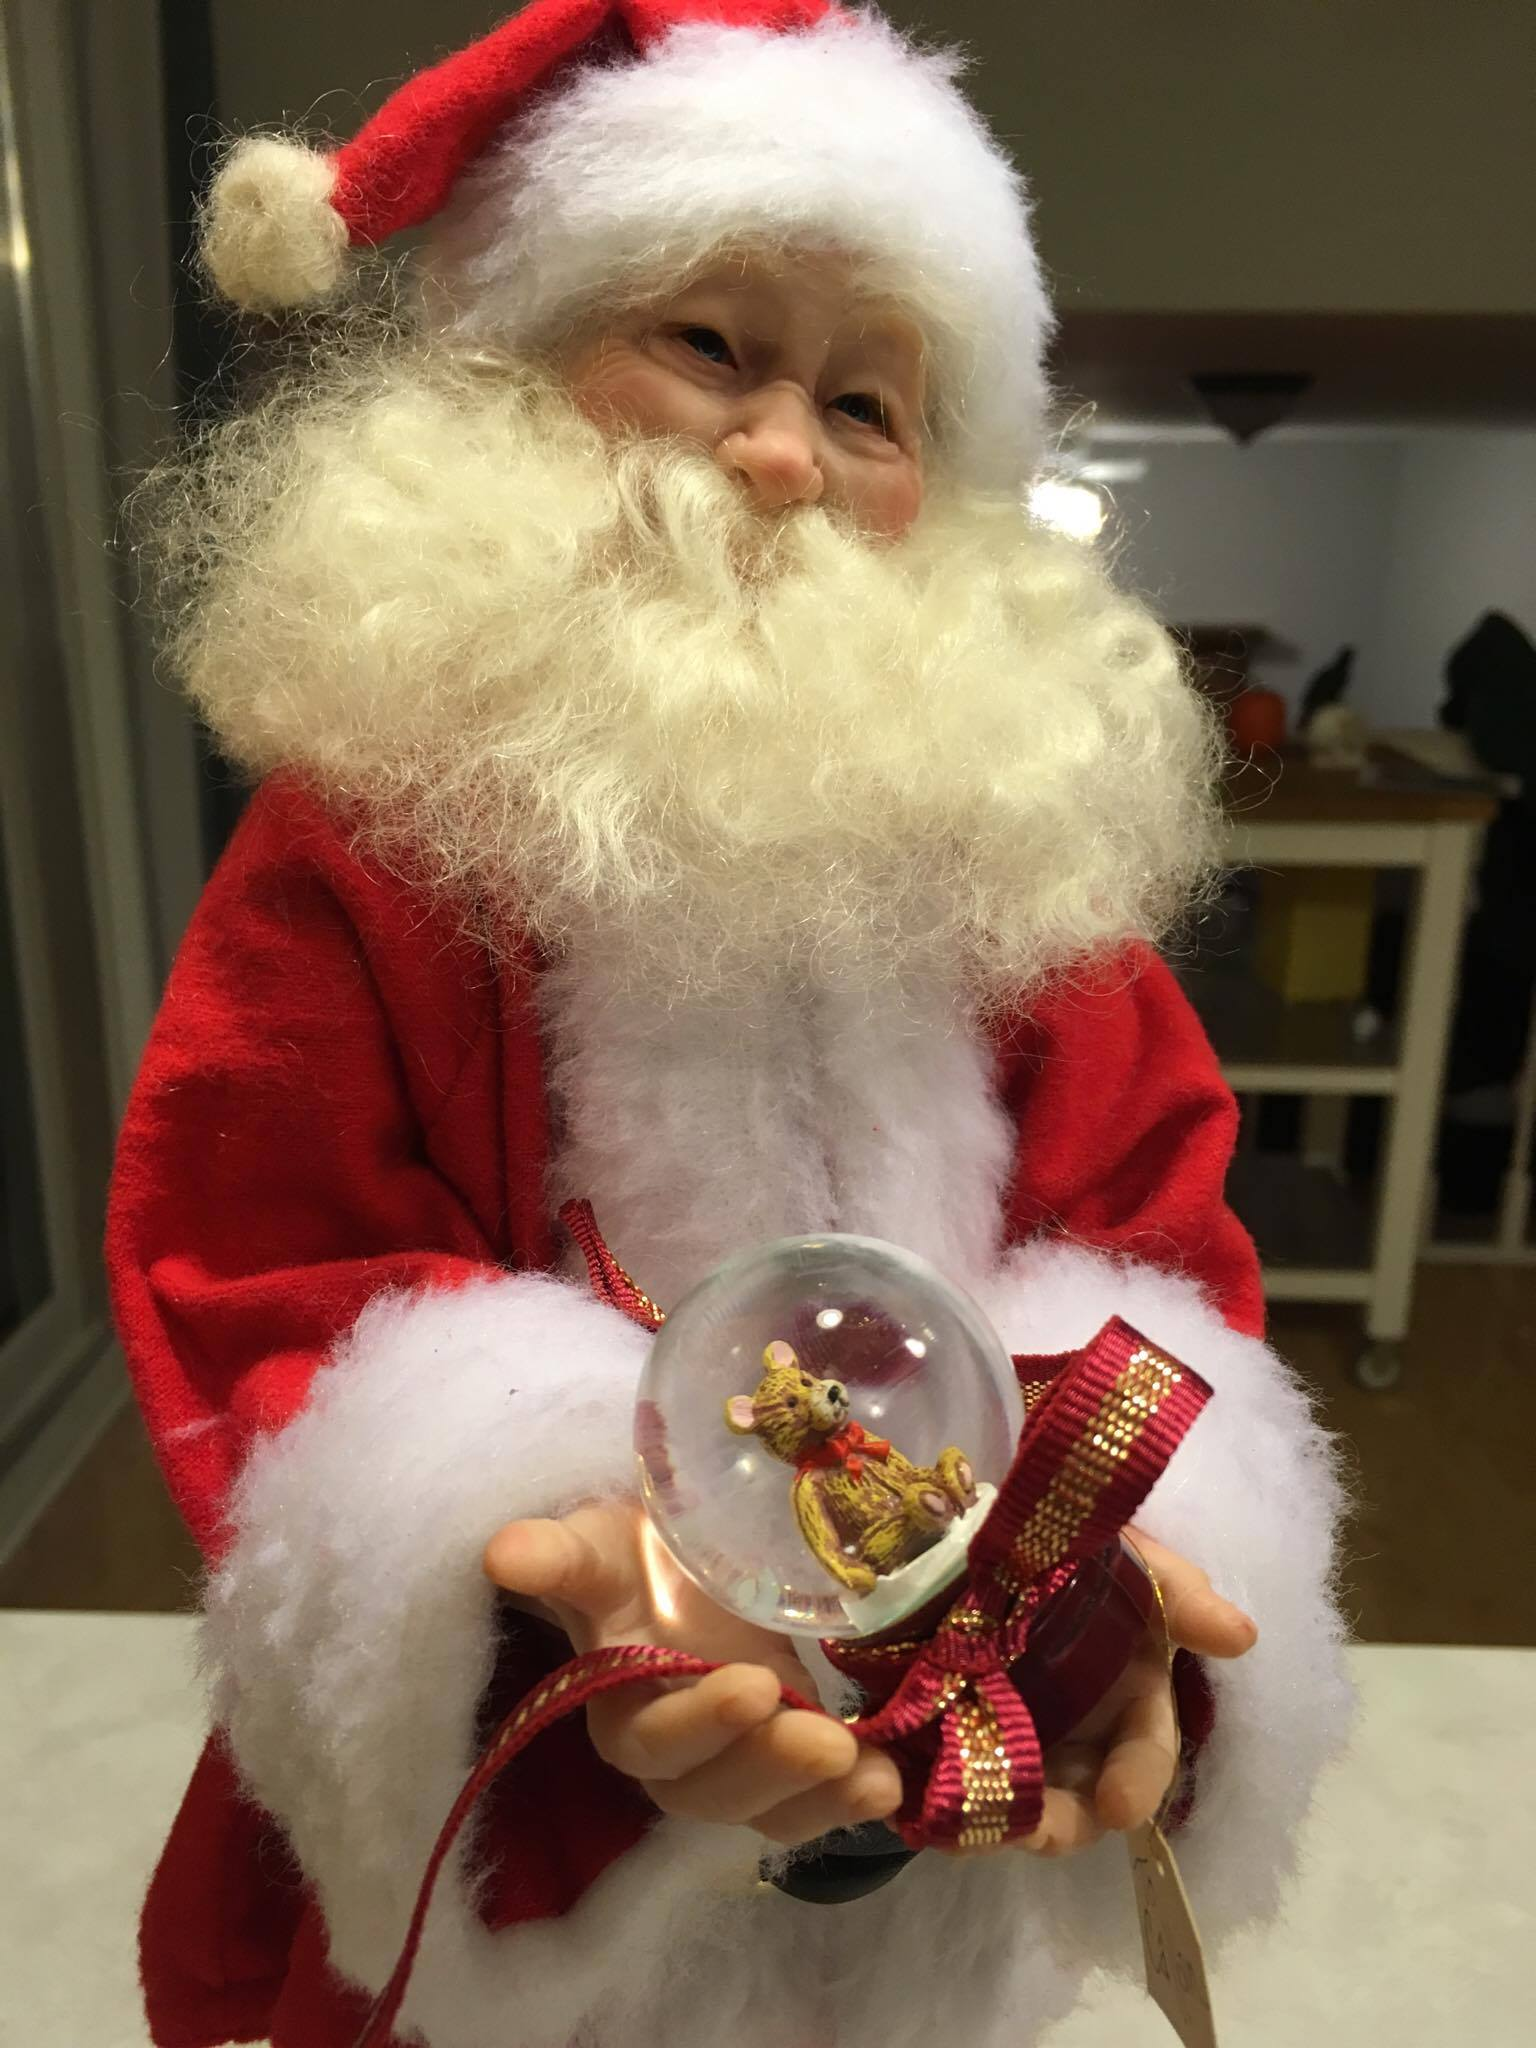 Sculpting Santas with Polymer Clay